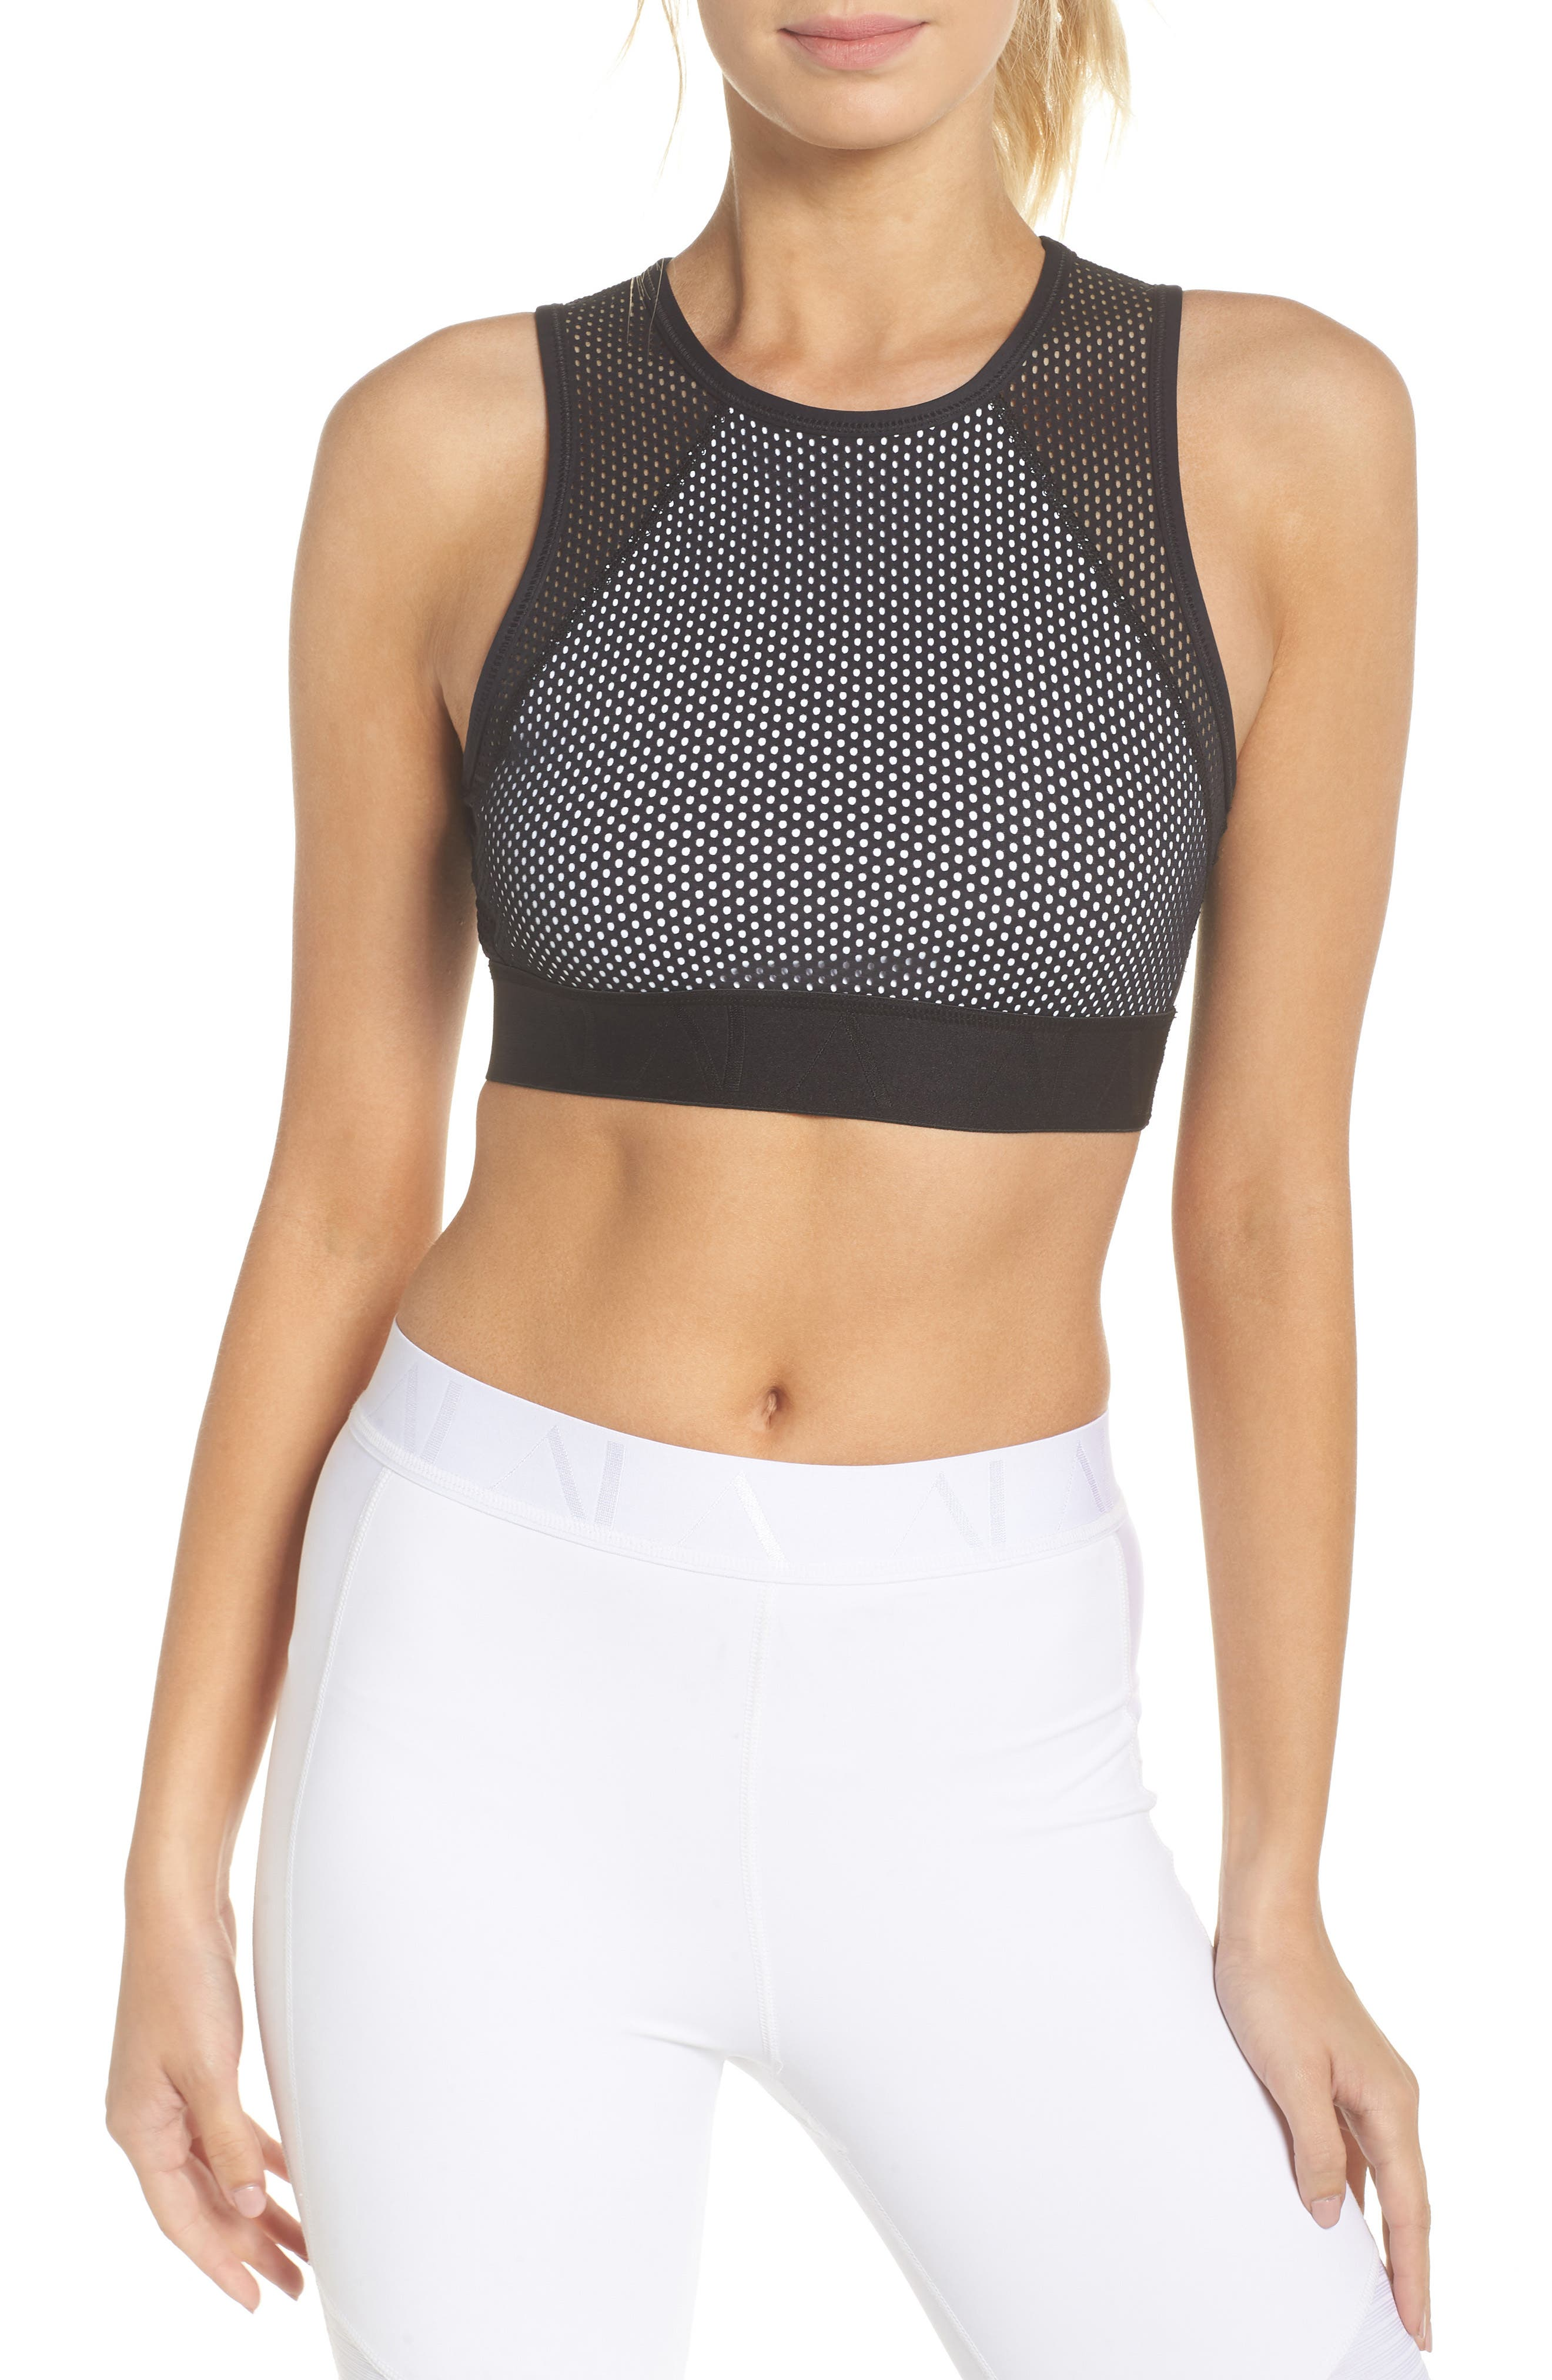 Swell Crop Tank,                             Main thumbnail 1, color,                             Black/ White